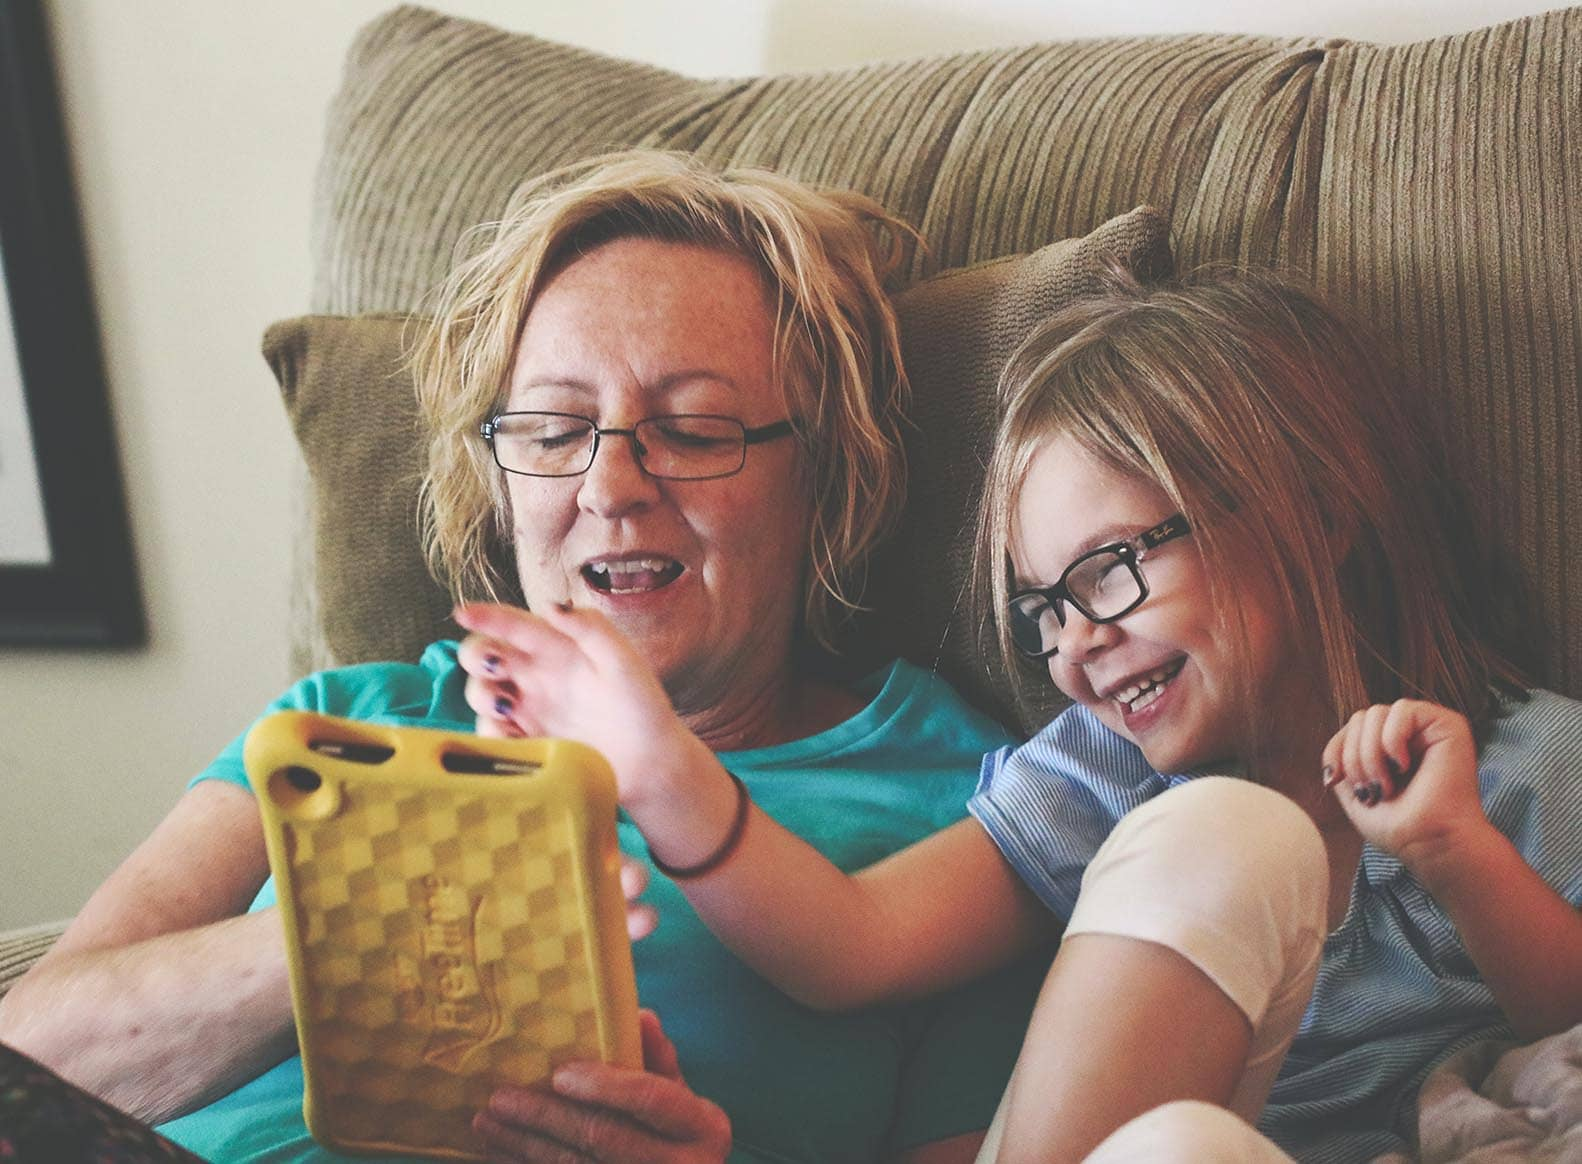 mother and child looking at ipadtext online sensory processing assessment